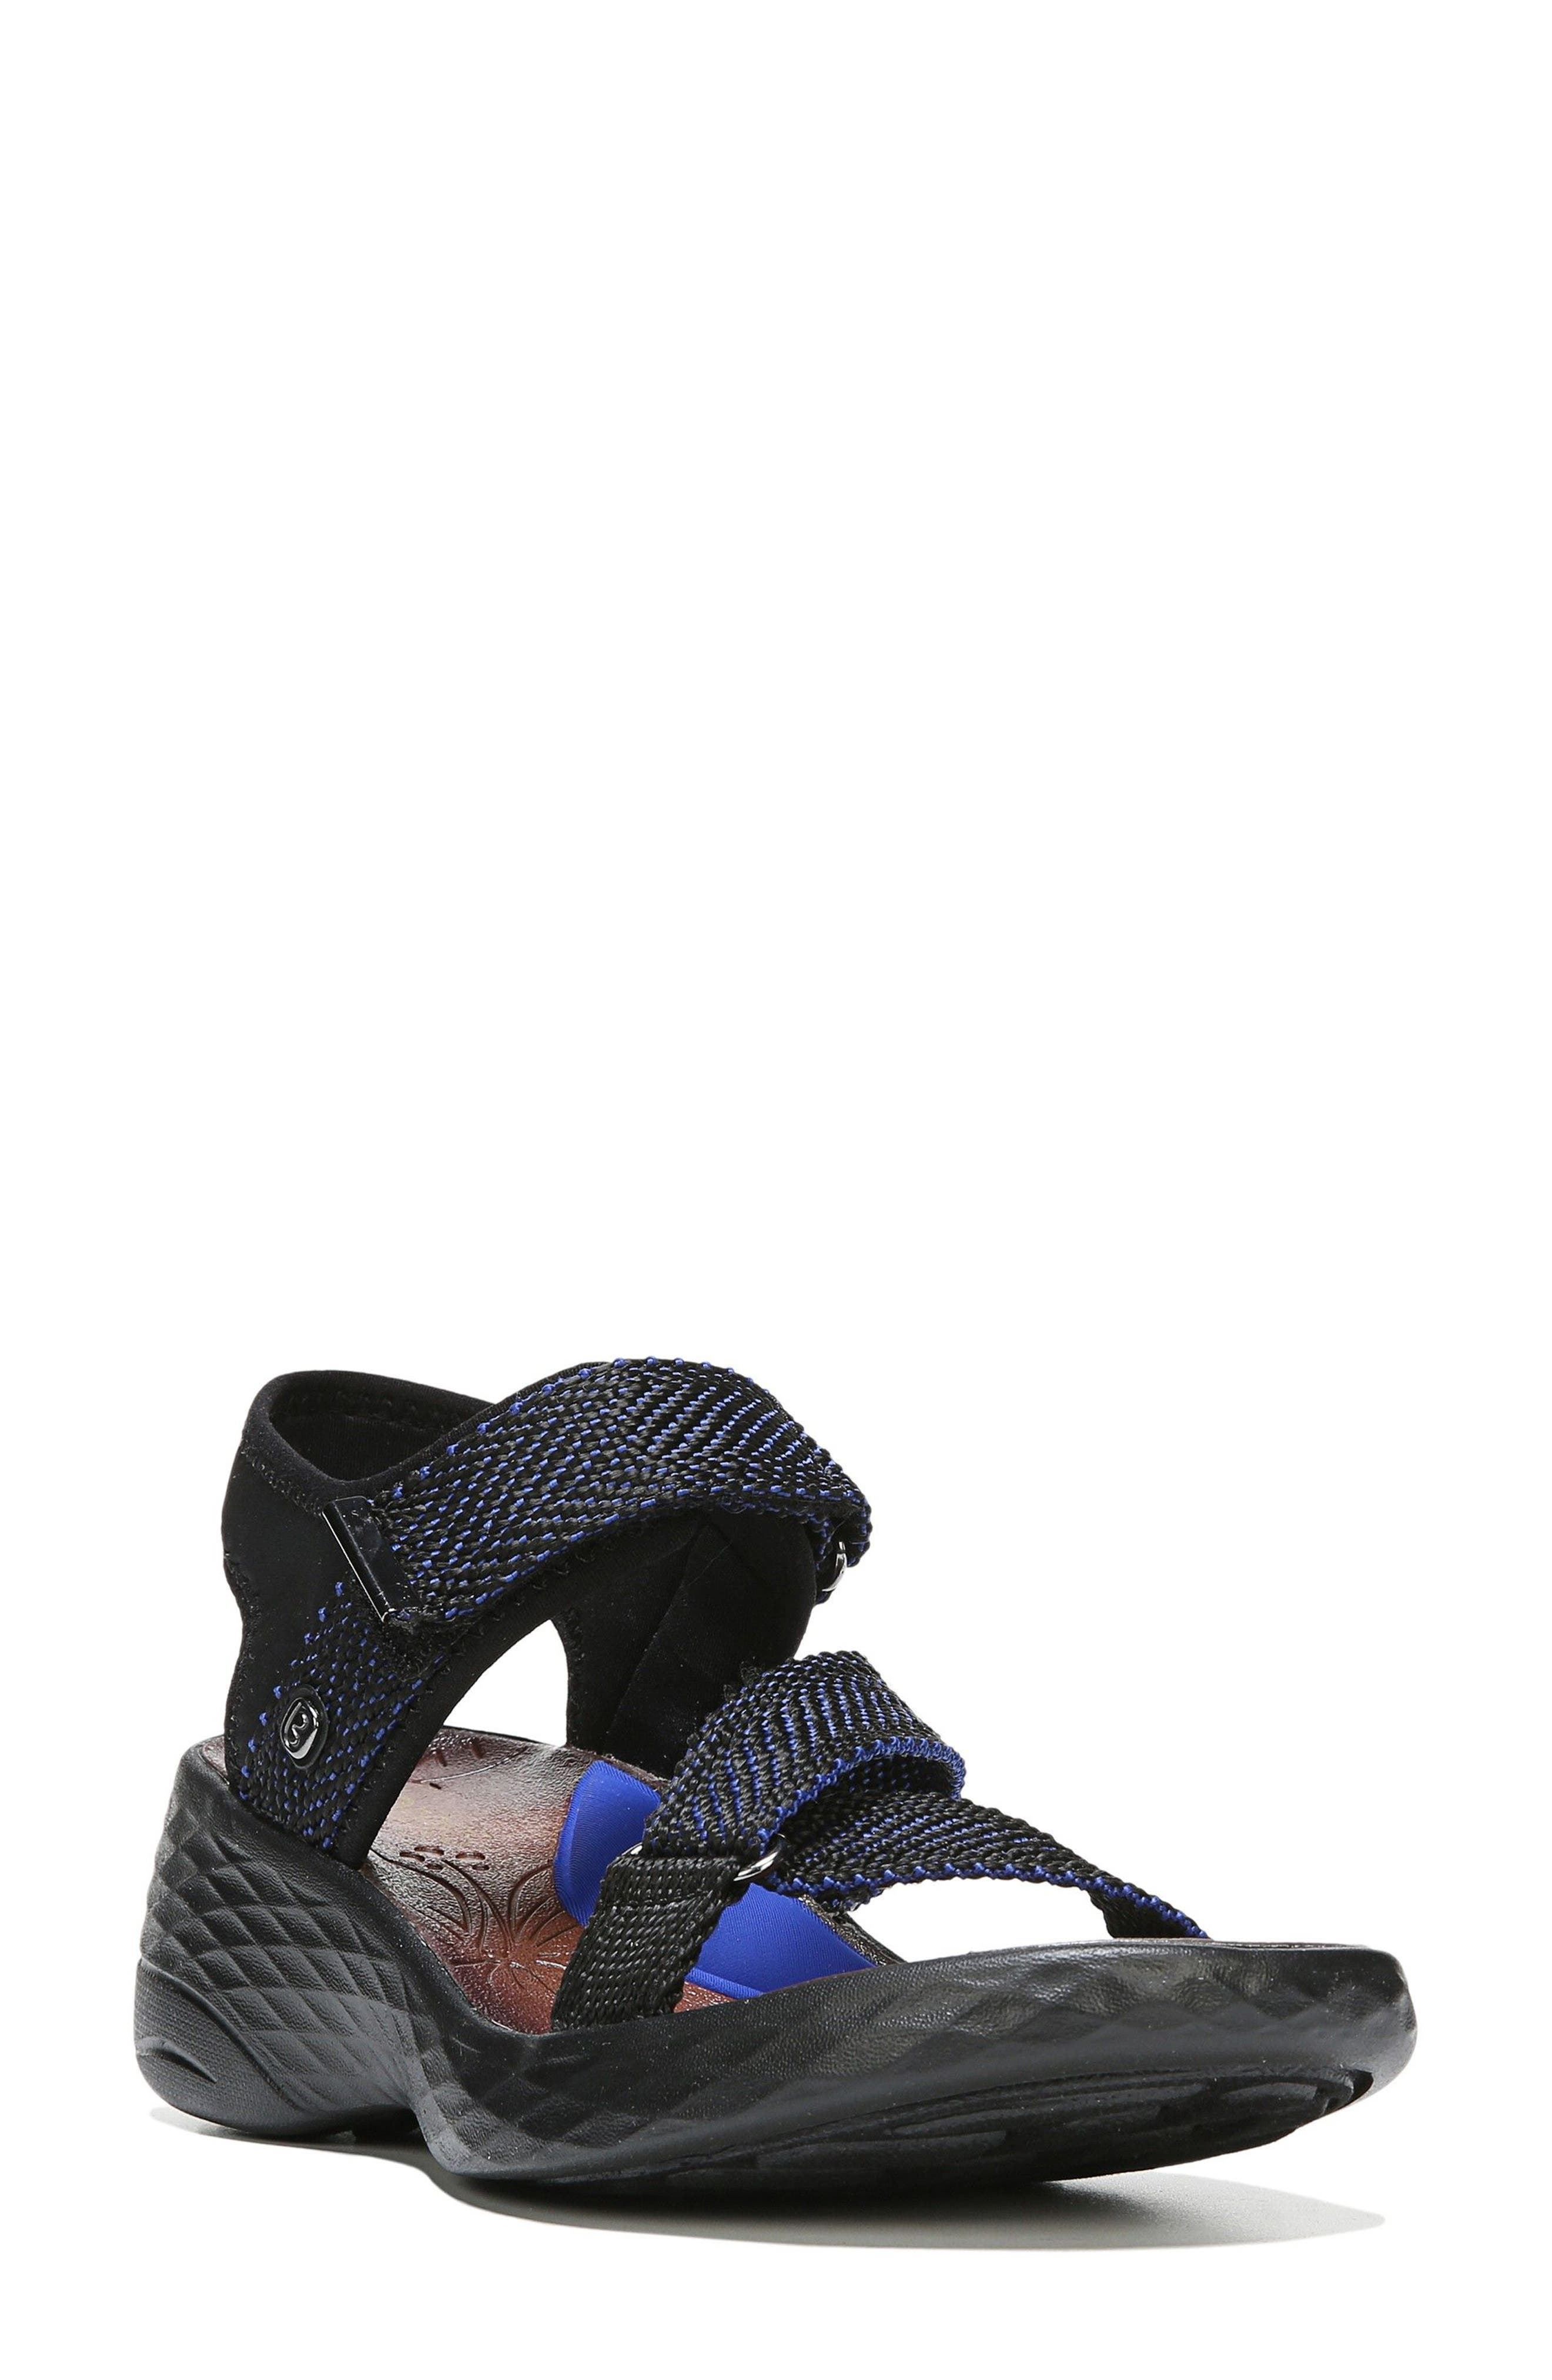 Jive Sandal,                             Main thumbnail 1, color,                             BLUE WEBBING FABRIC